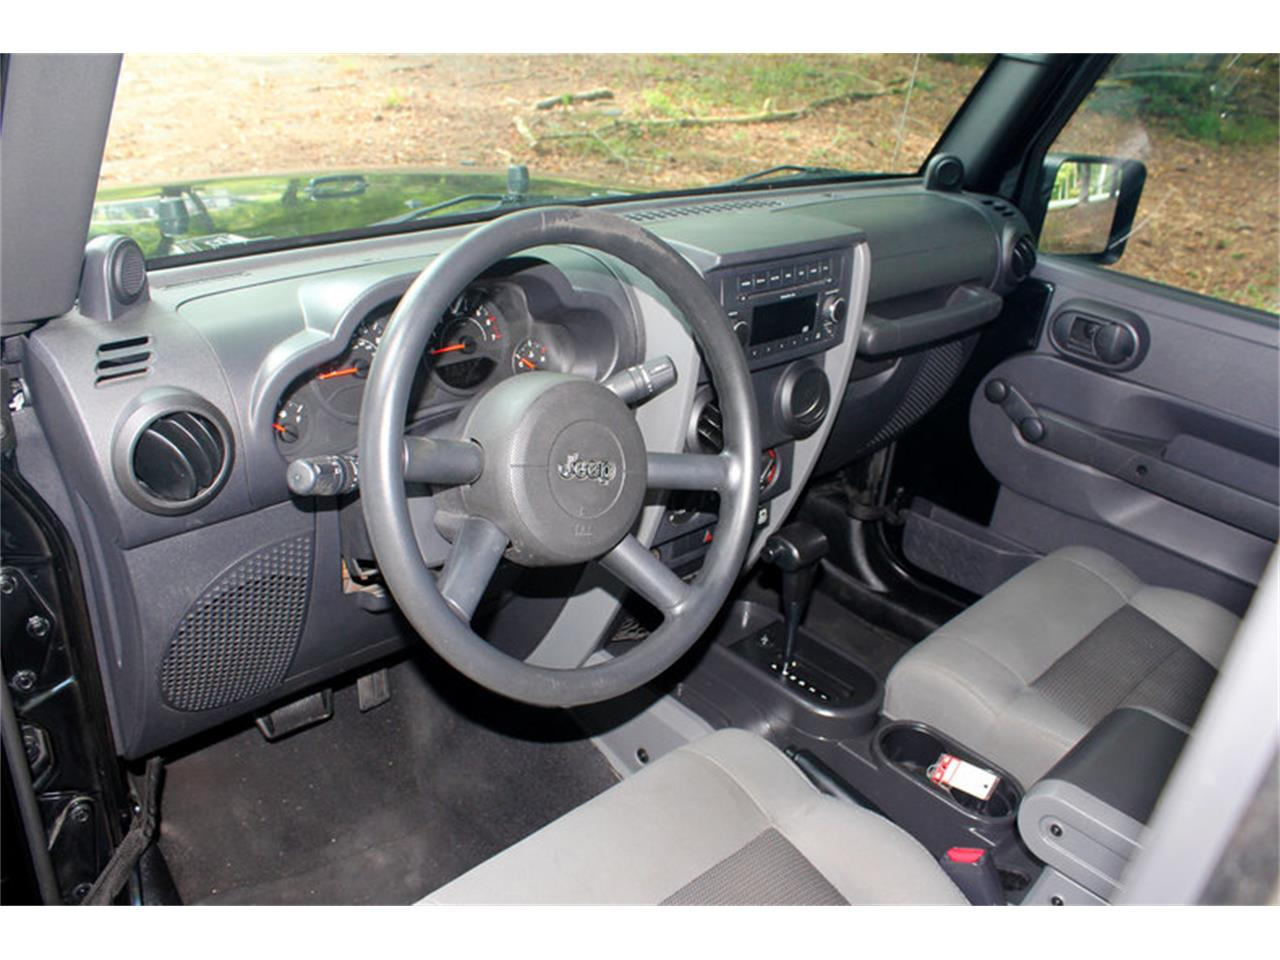 Large Picture of '09 Wrangler located in Tennessee - OH0K